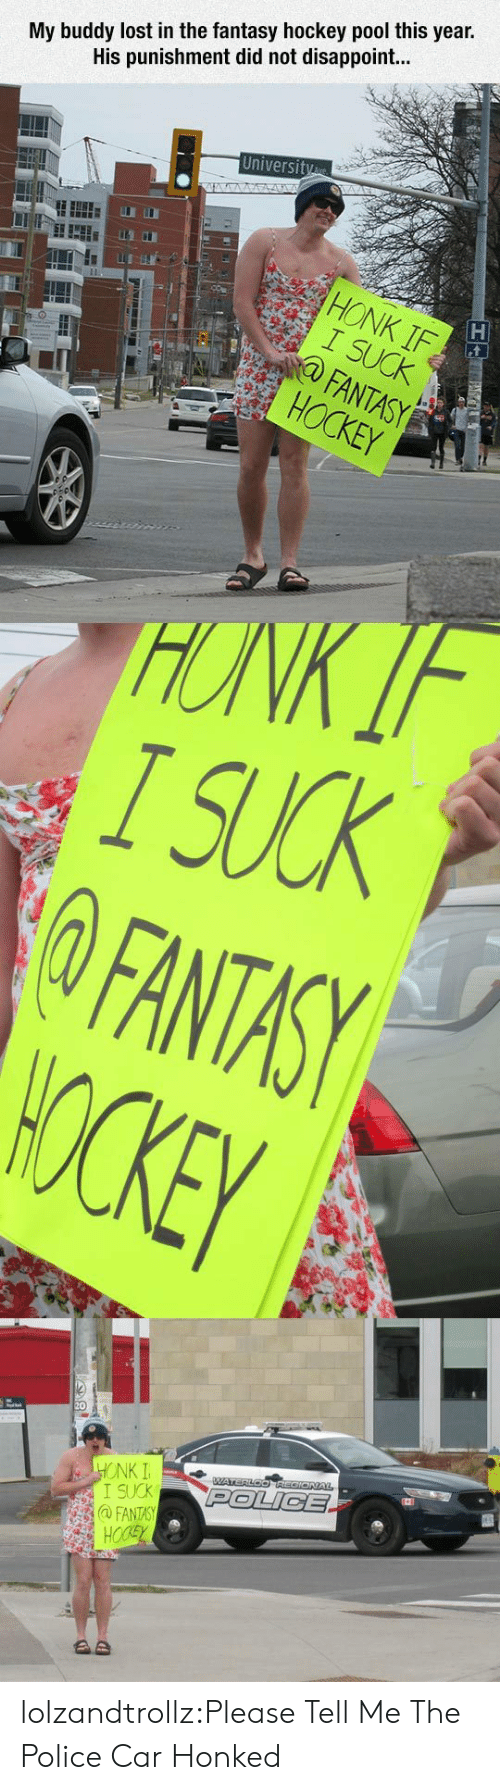 Police Car: My buddy lost in the fantasy hockey pool this year.  His punishment did not disappoint...  University  STA  HONK IF  I SUCK  FANTASY  HOCKEY  HONK IF  I SUCK  FANTASY  WOCKEY  HONK I  I SUCK  @FANTASY  HOCSY  WATERLOOREGIONAL  POLICE  AD lolzandtrollz:Please Tell Me The Police Car Honked